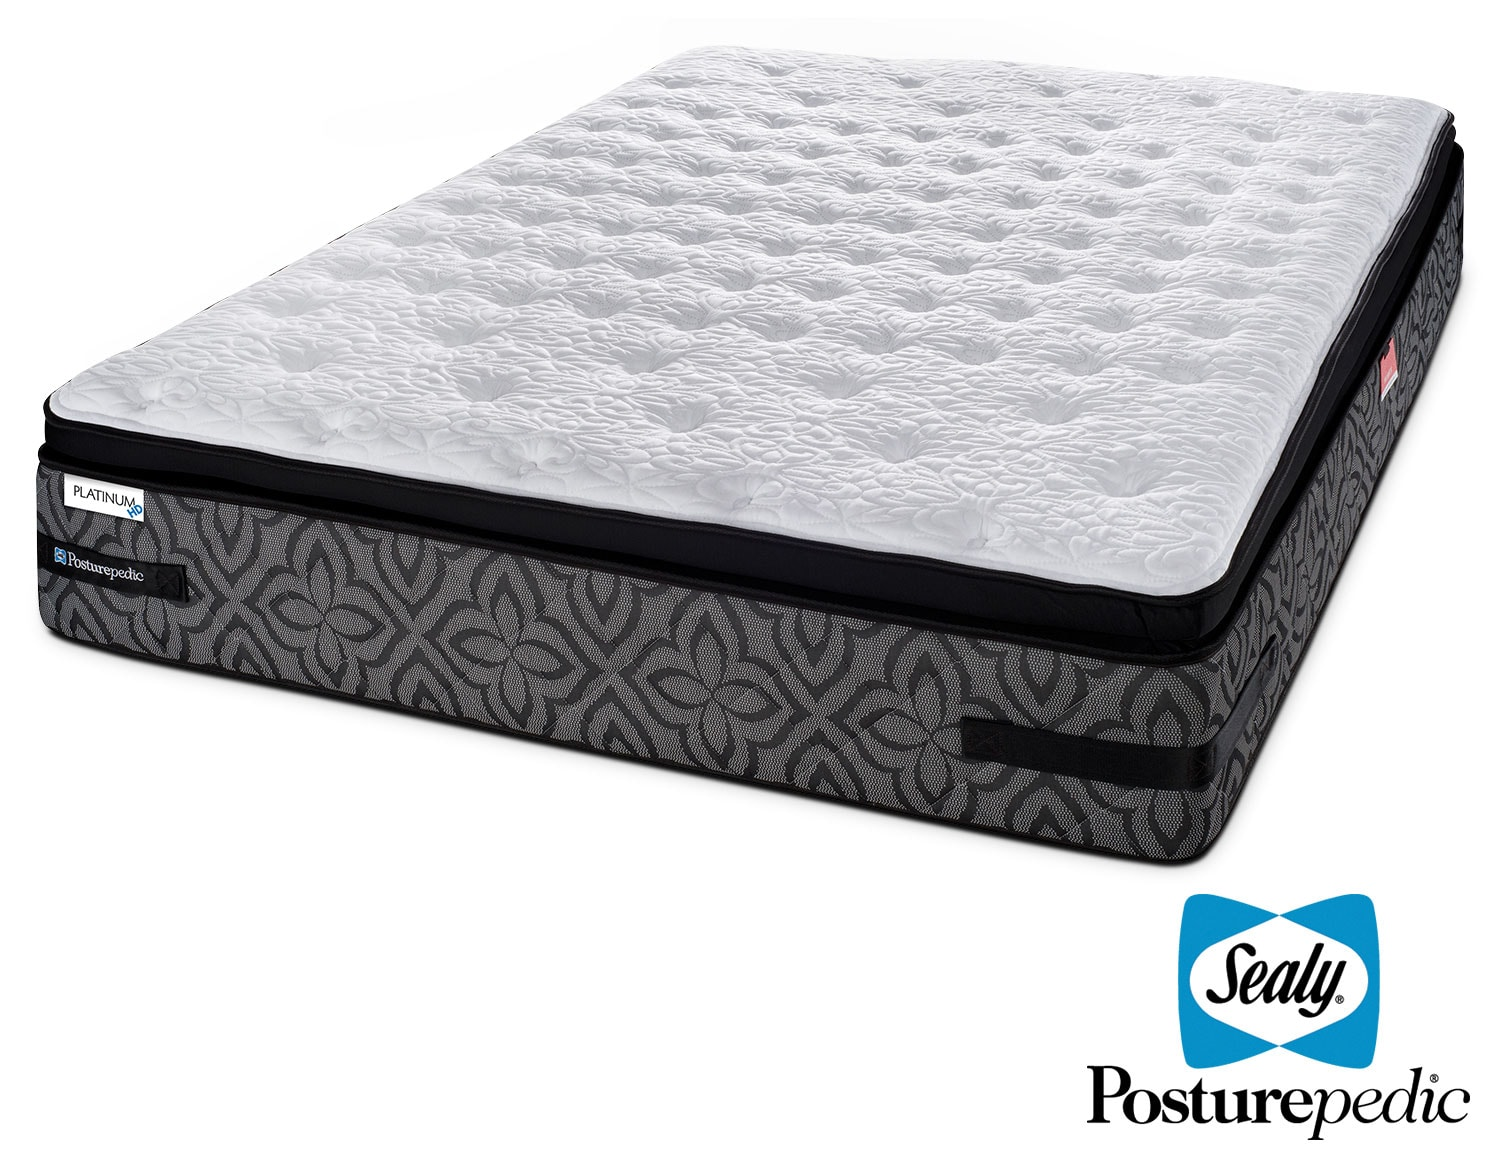 Mattresses and Bedding - Sealy Posturepedic 2 K Firm Queen Mattress